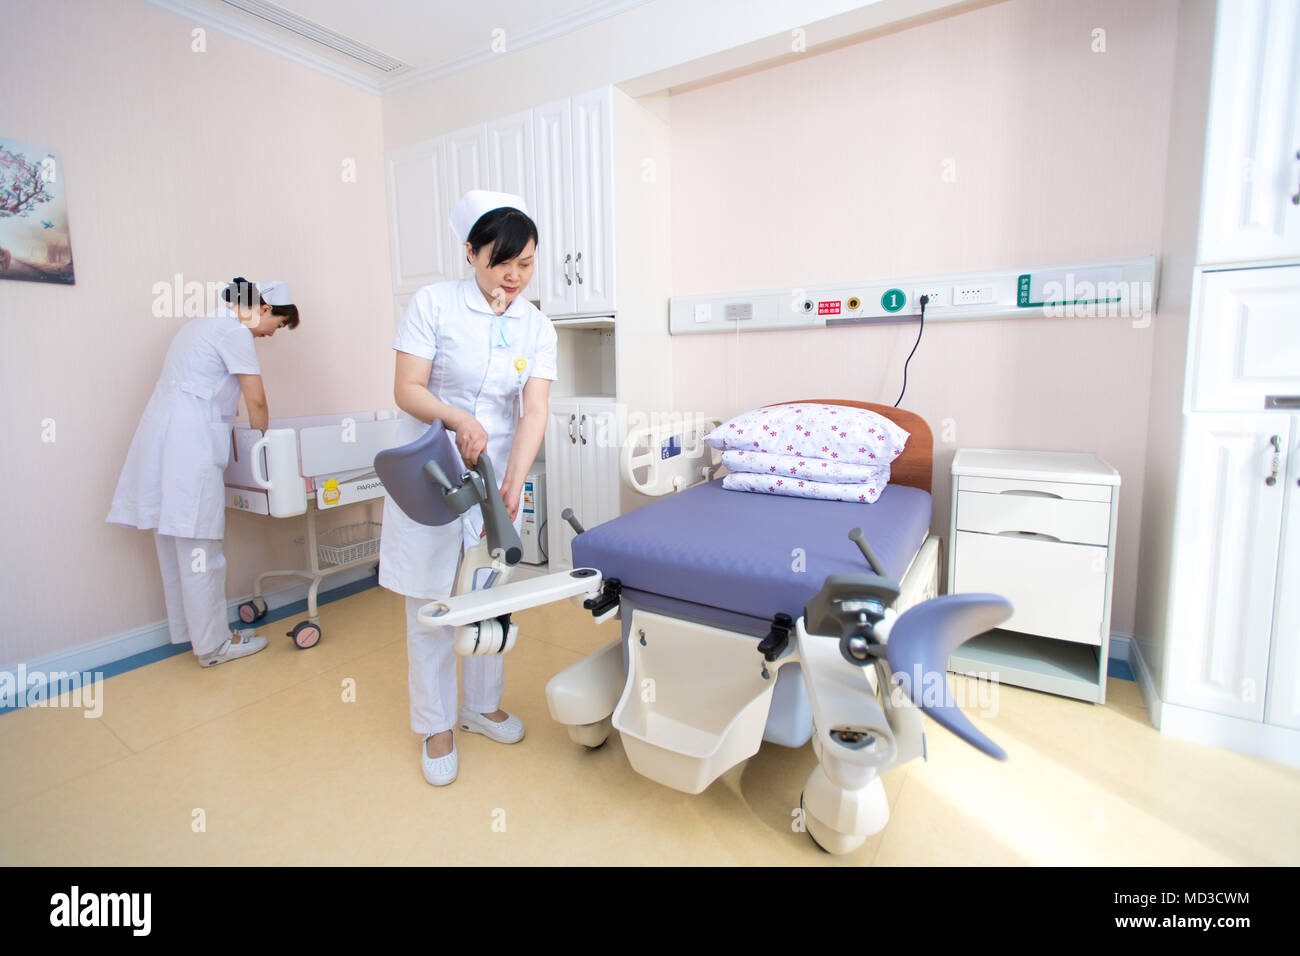 Wuhan, China's Hubei Province. 18th Apr, 2018. Medical workers settle facilities at a maternity ward in Wuhan Women and Children Medical Care Center in Wuhan, capital of central China's Hubei Province, April 18, 2018. A total of 17 new maternity wards opened here recently to offer comprehensive medical service in labor, delivery, recovery and postpartum phases. New mothers, accompanied by their families, can receive the medical treatment at these separate wards before and after giving birth. Credit: Xiong Qi/Xinhua/Alamy Live News - Stock Image